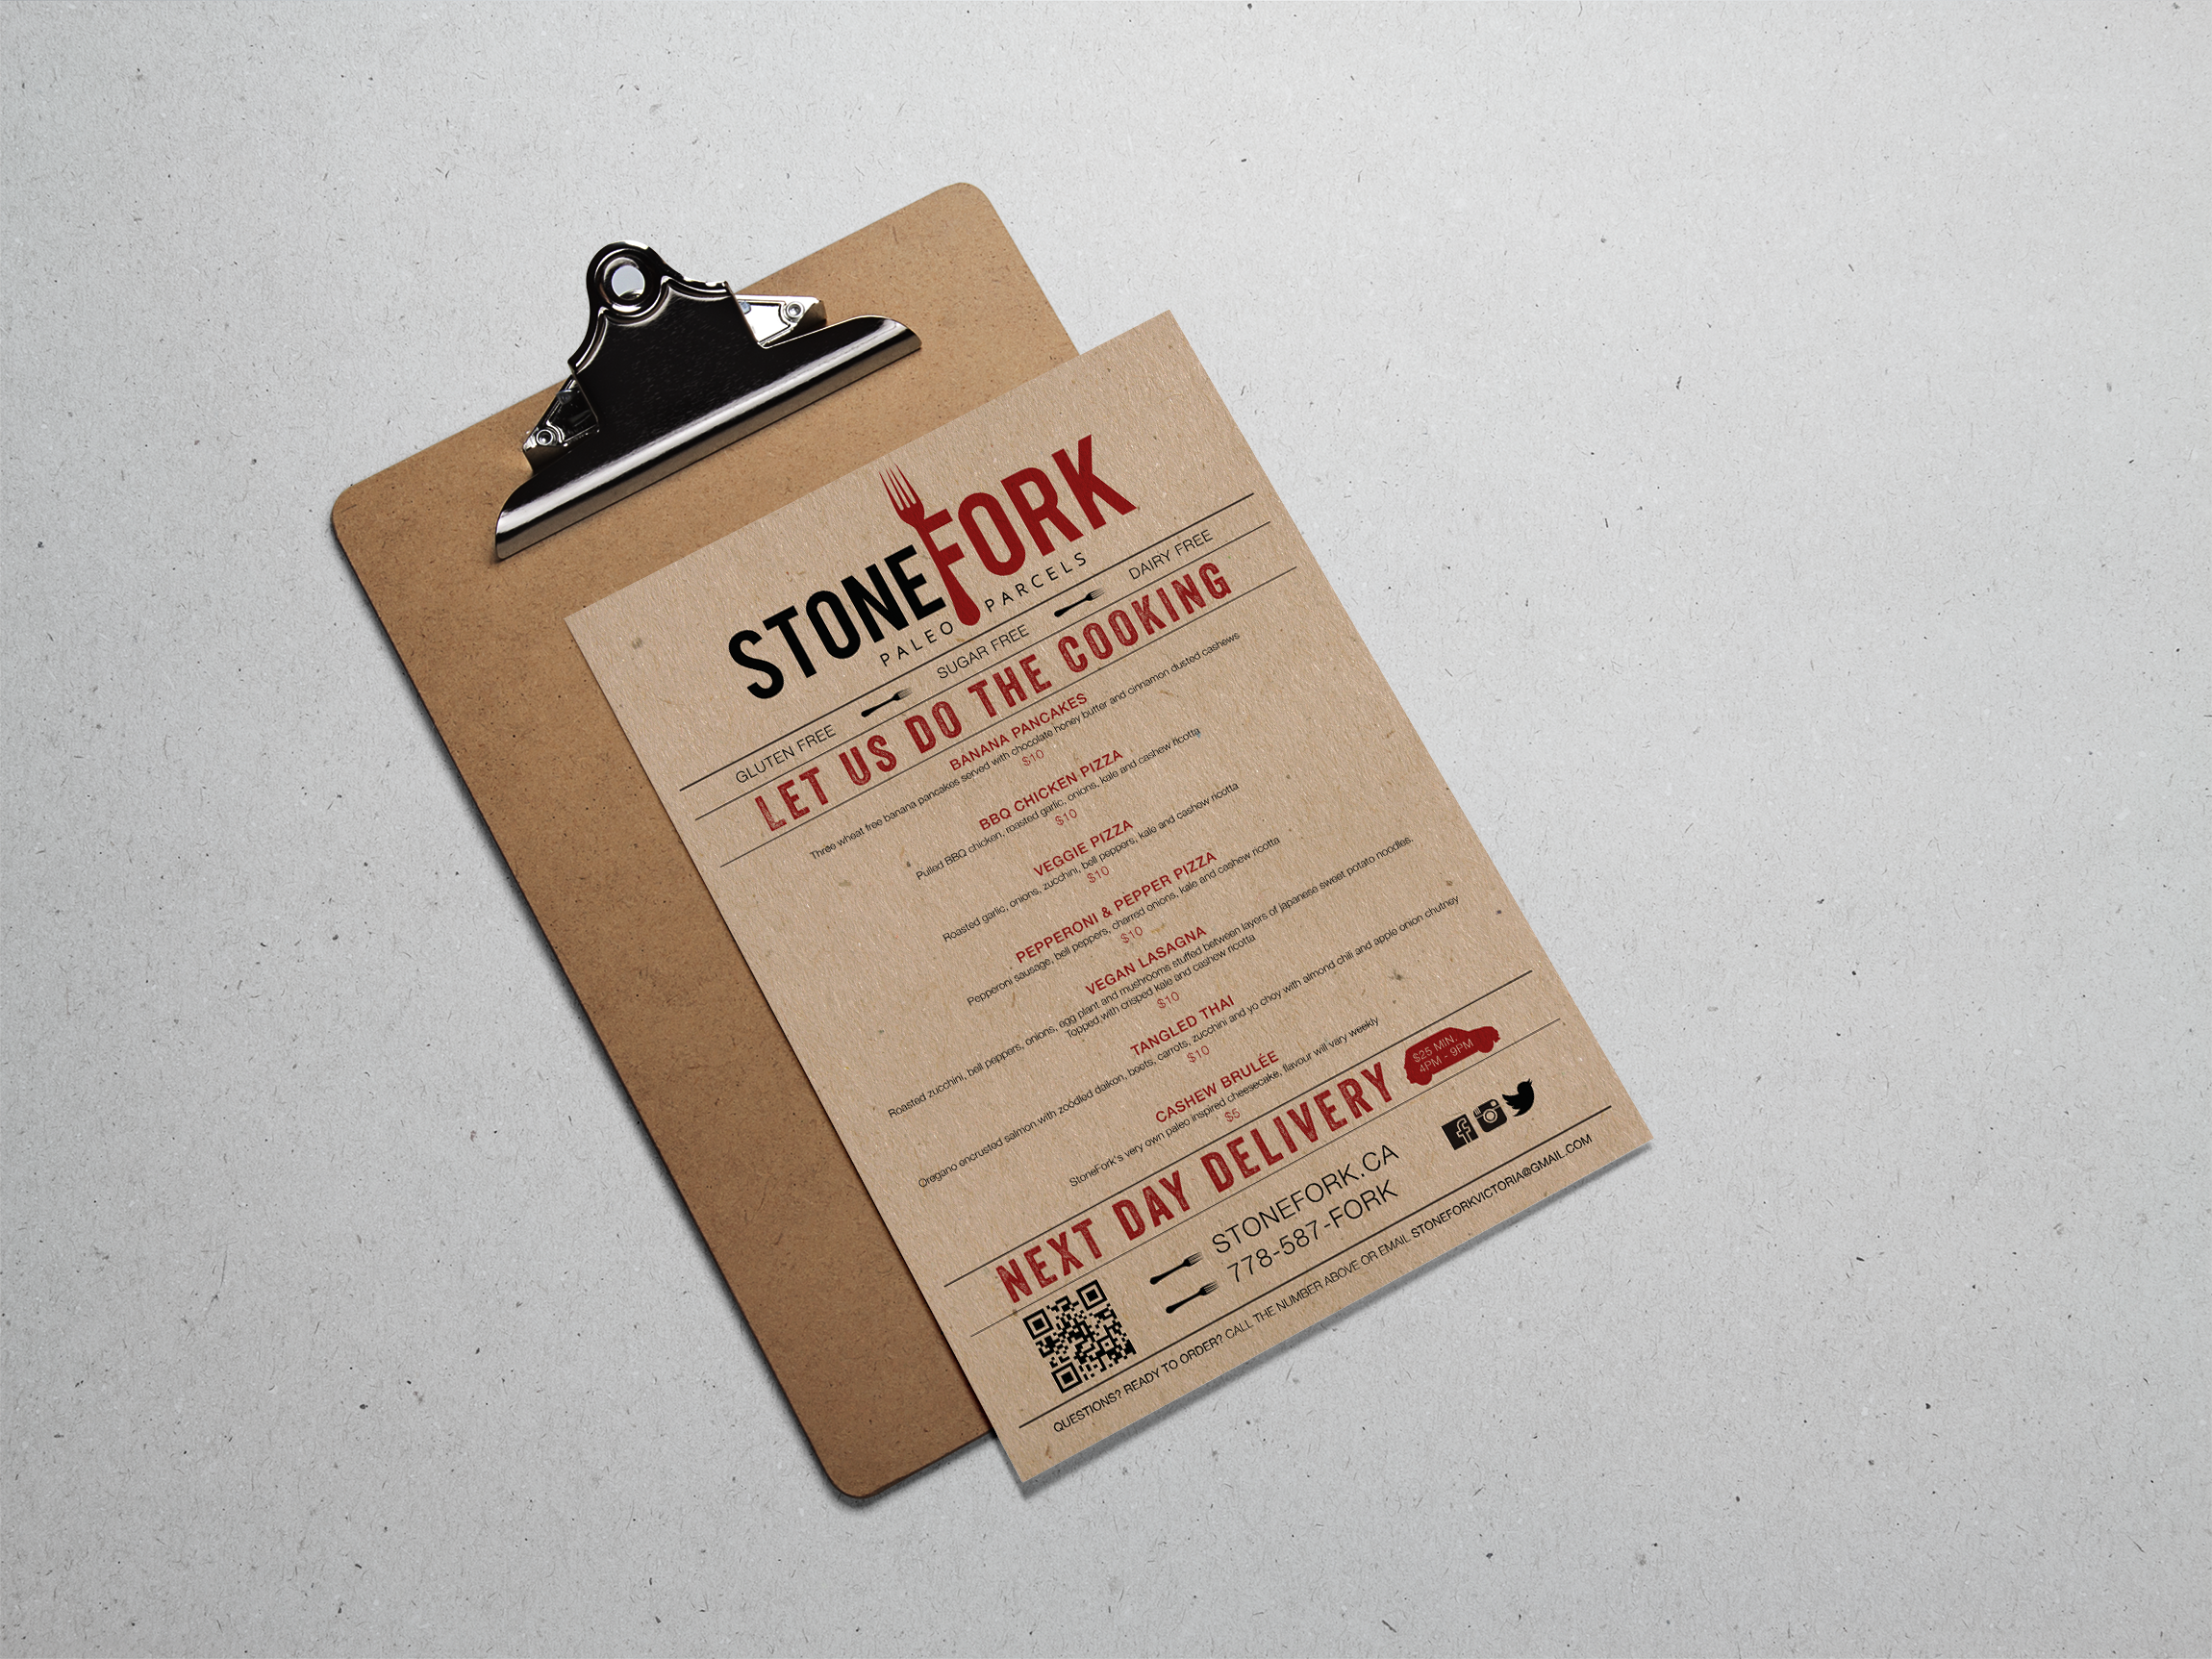 The colour palette is rustic, representing the modern caveman aesthetic with high contrast, high impact red and black, grounded by an earthy kraft paper texture.